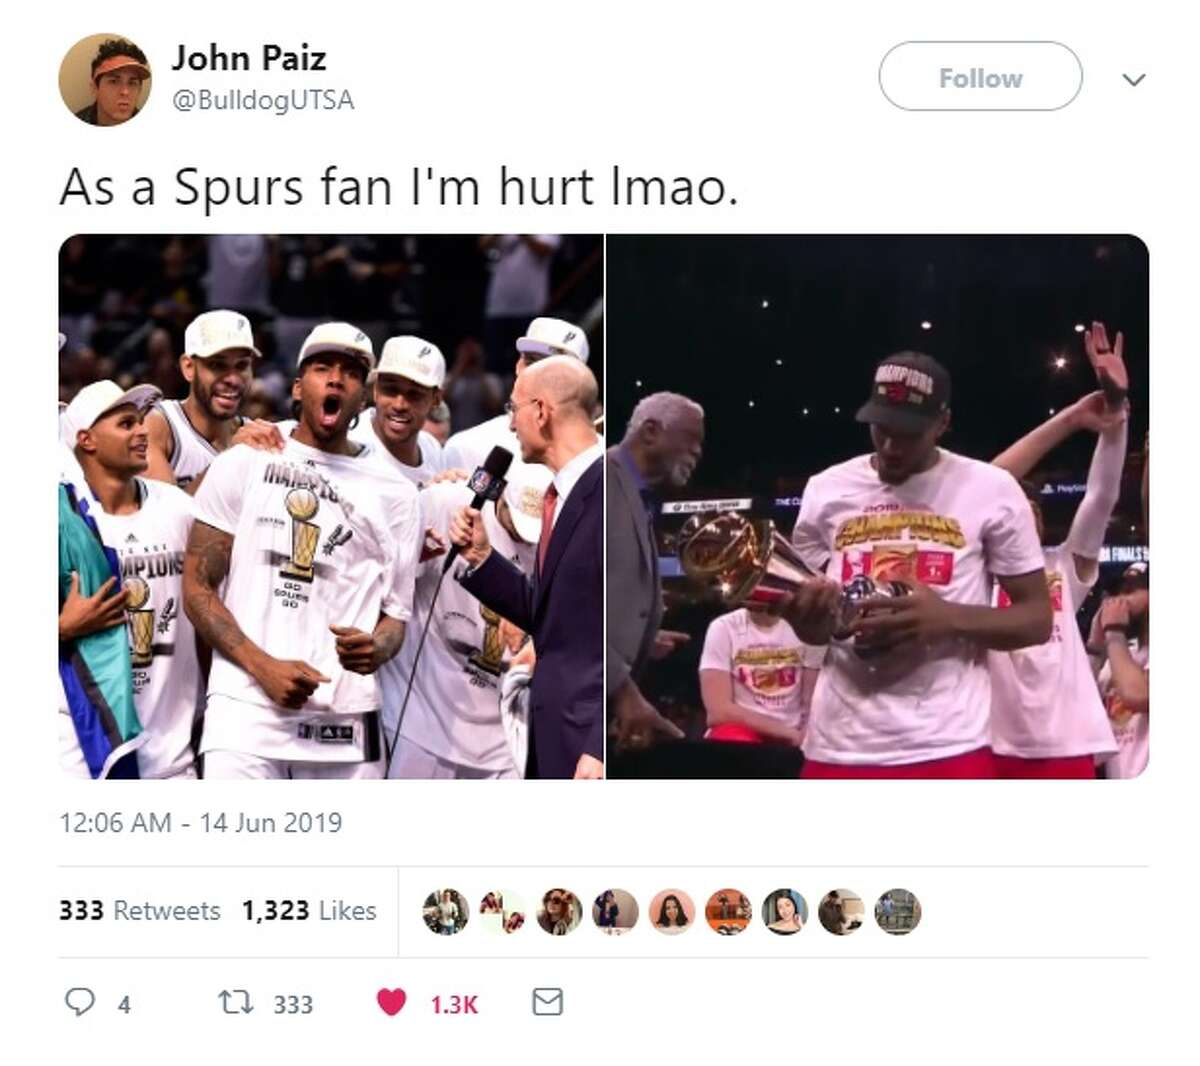 @BulldogUTSA tweeted how hurt he felt about Kawhi winning a championship.